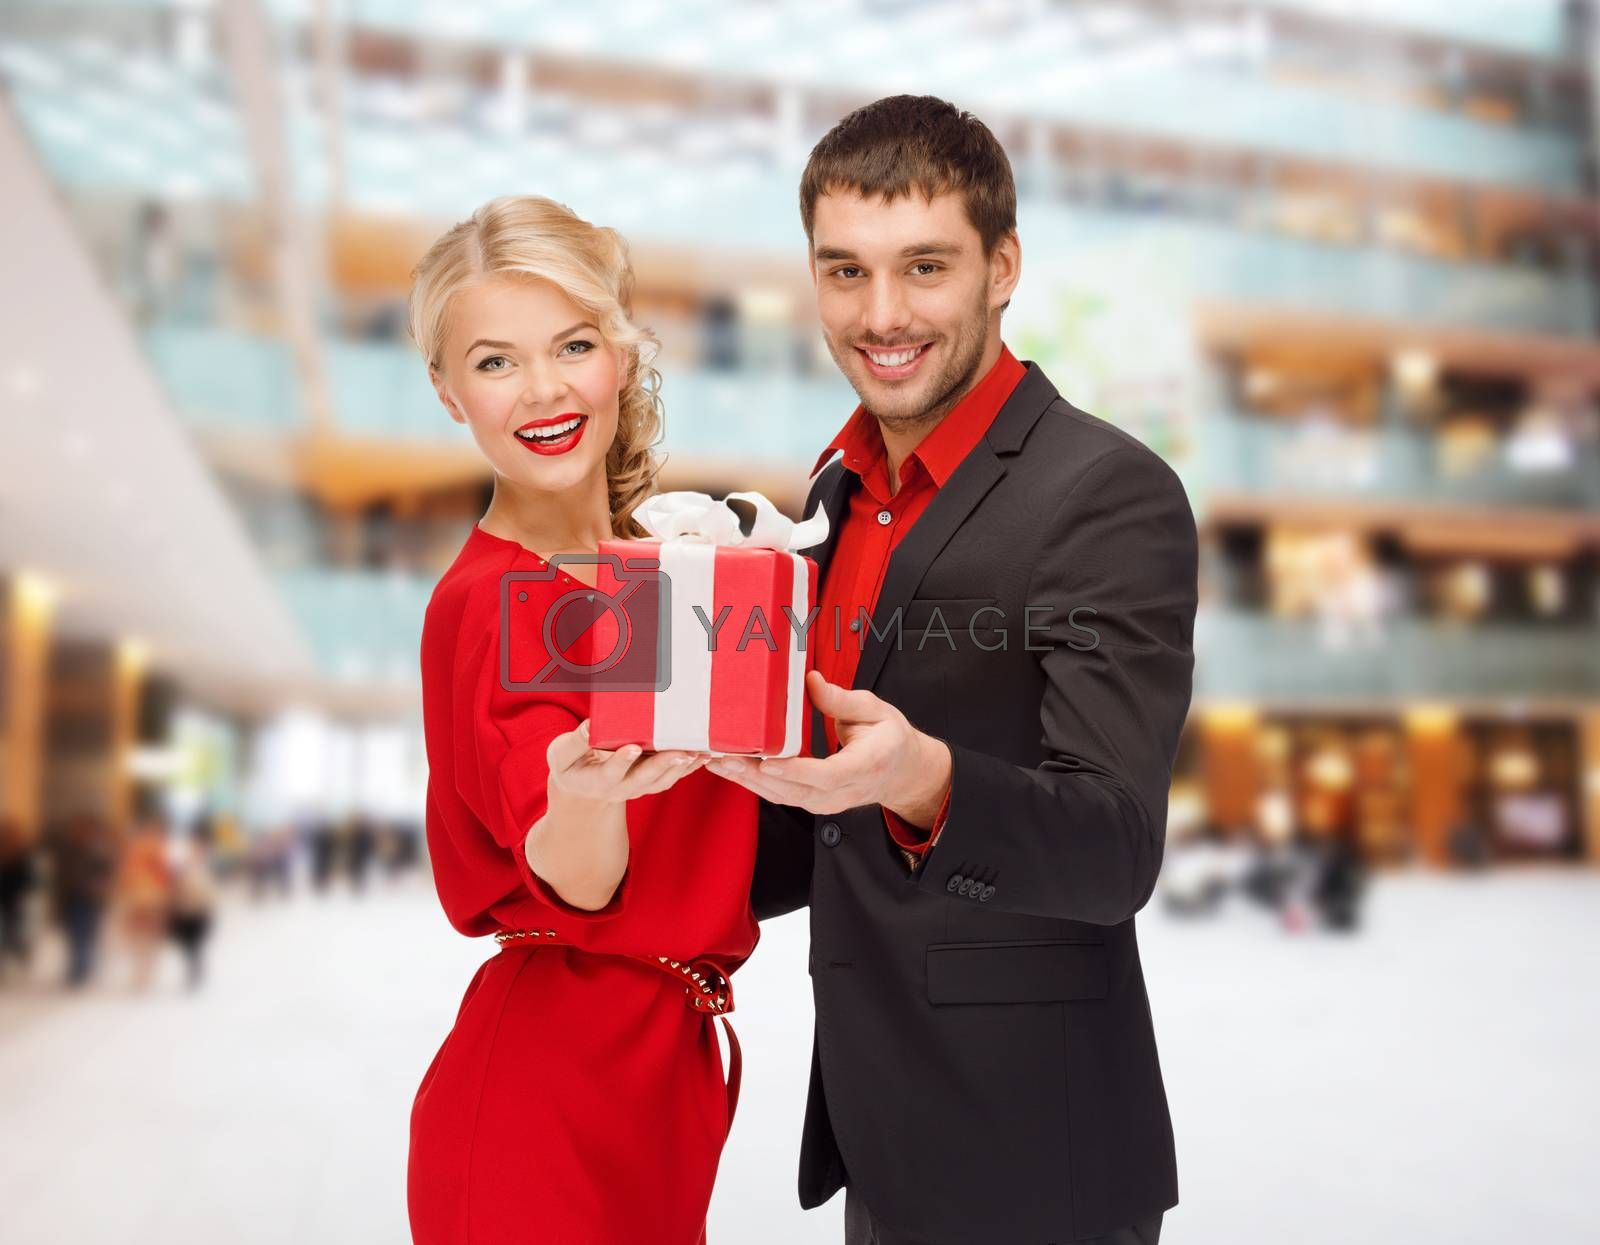 christmas, holidays, valentine's day, celebration and people concept - smiling man and woman with present over shopping centre background